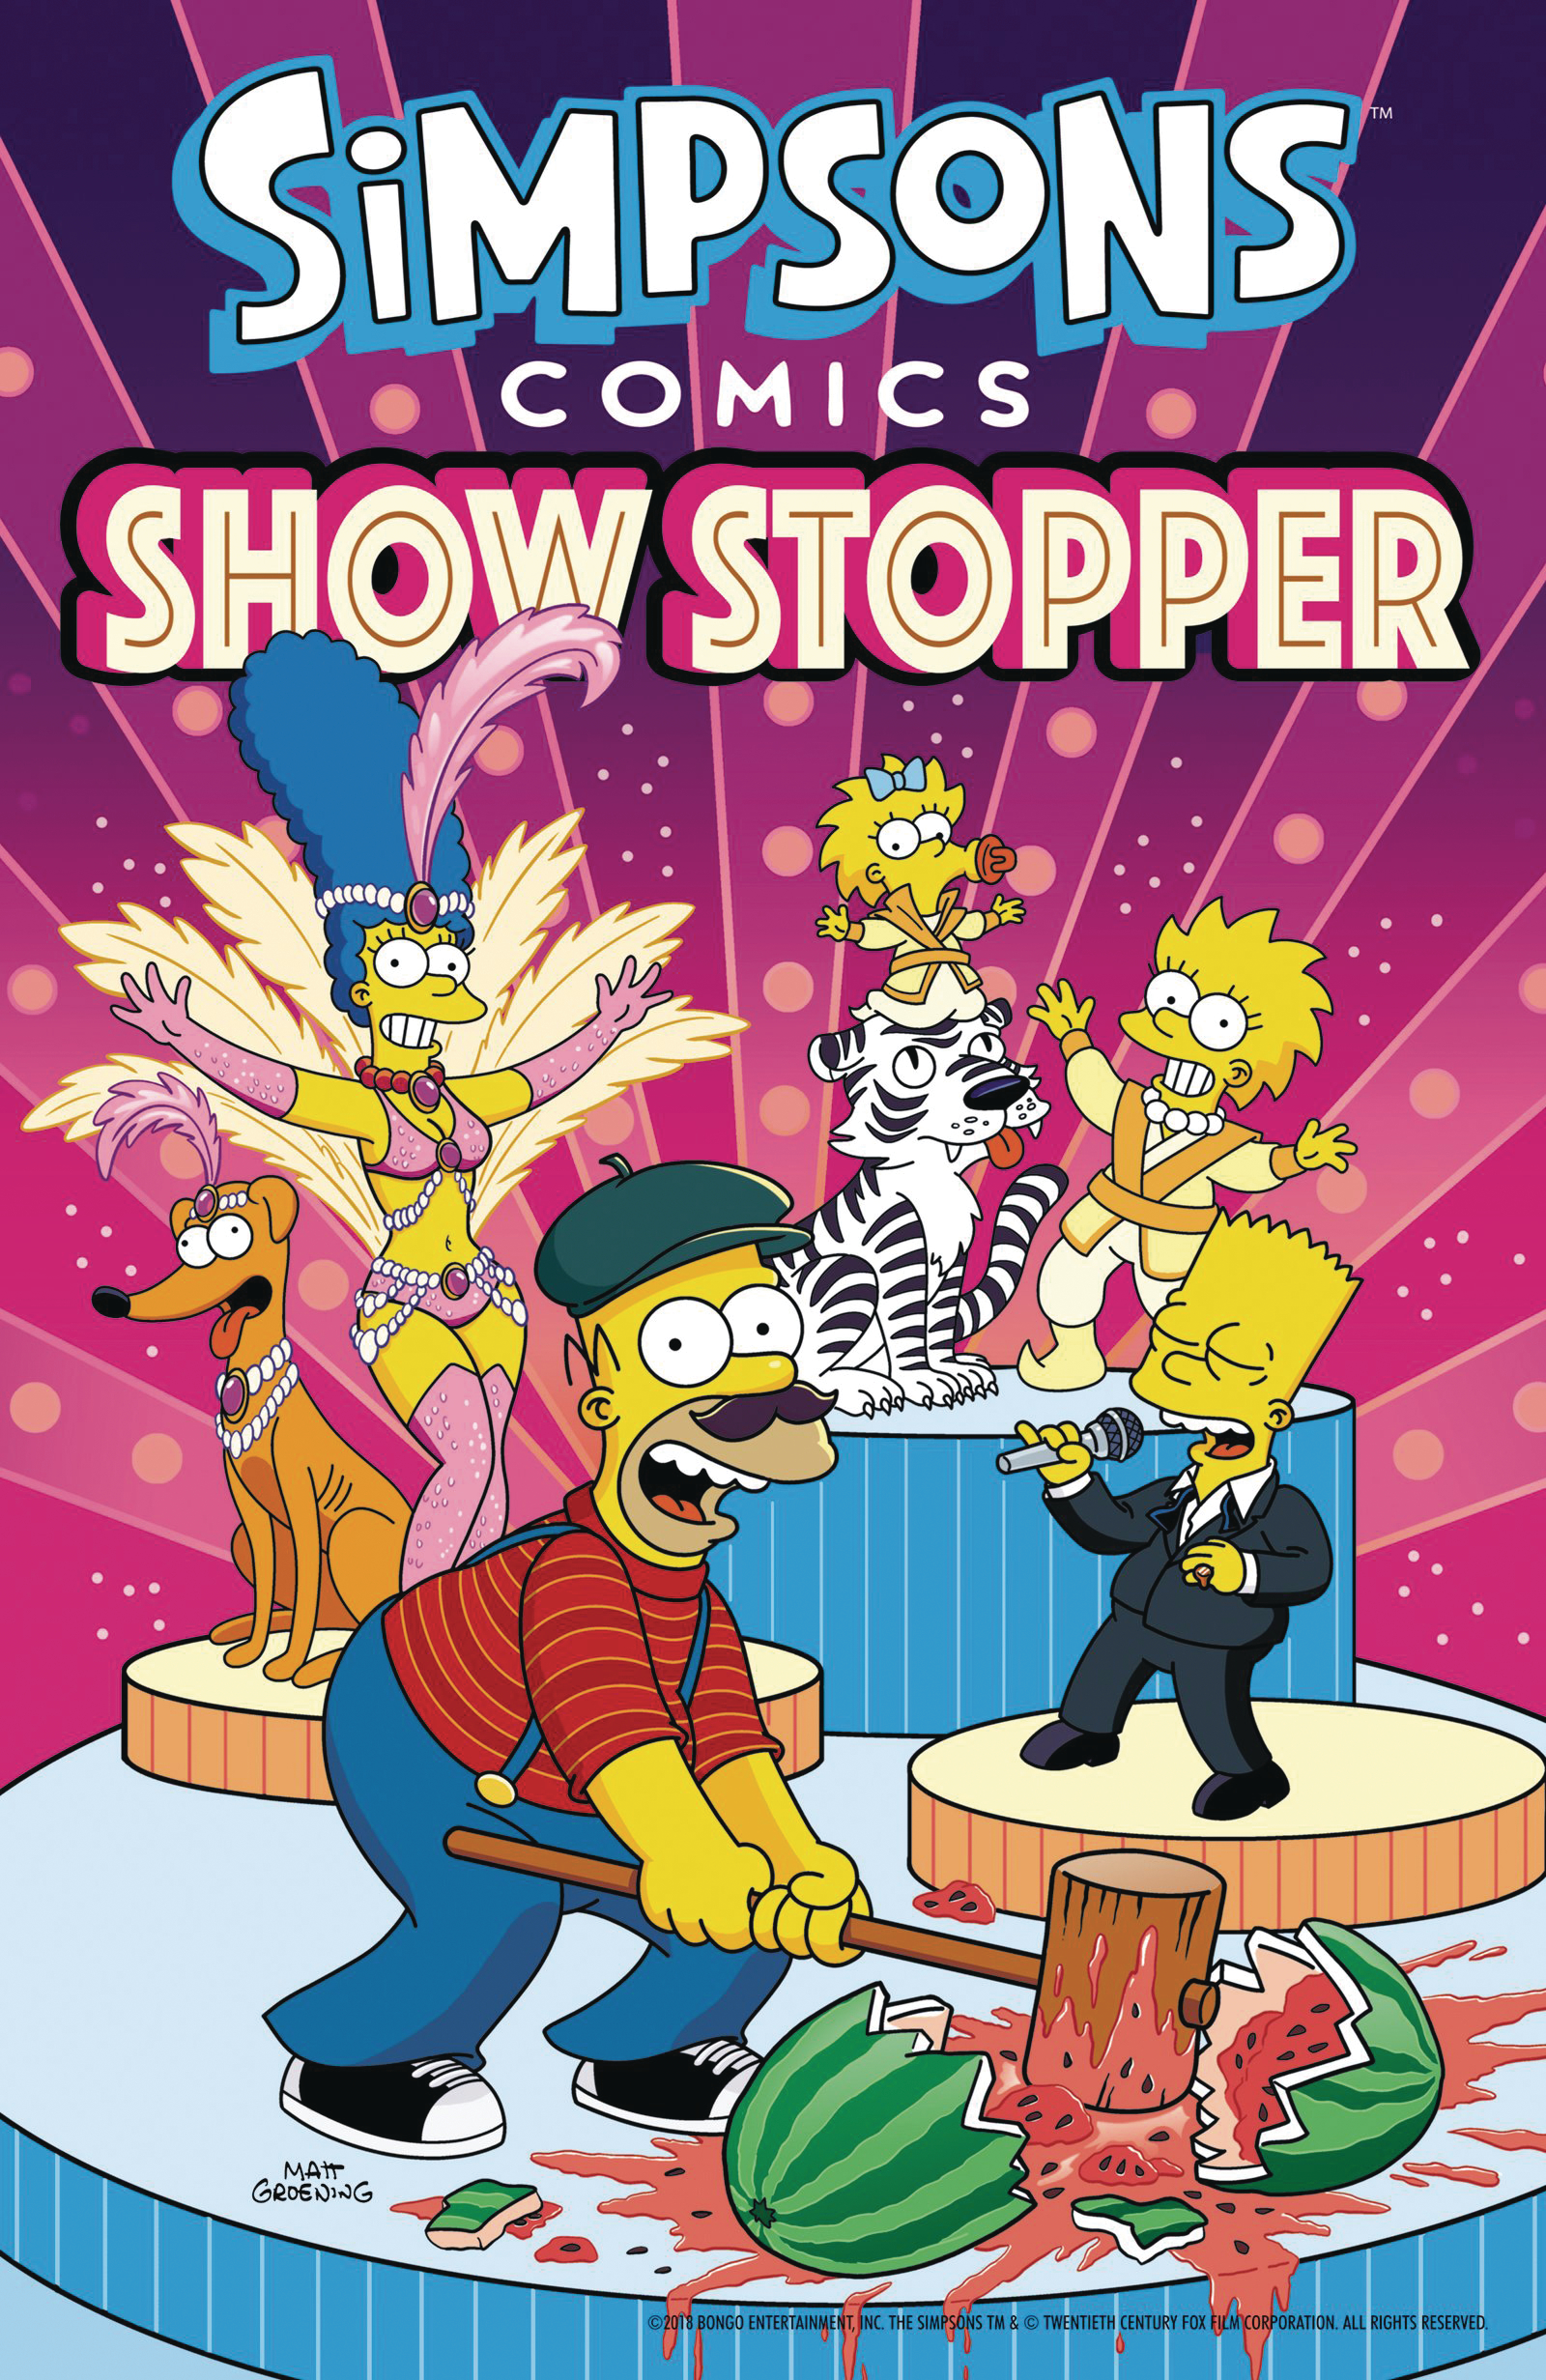 SIMPSONS COMICS SHOWSTOPPER TP